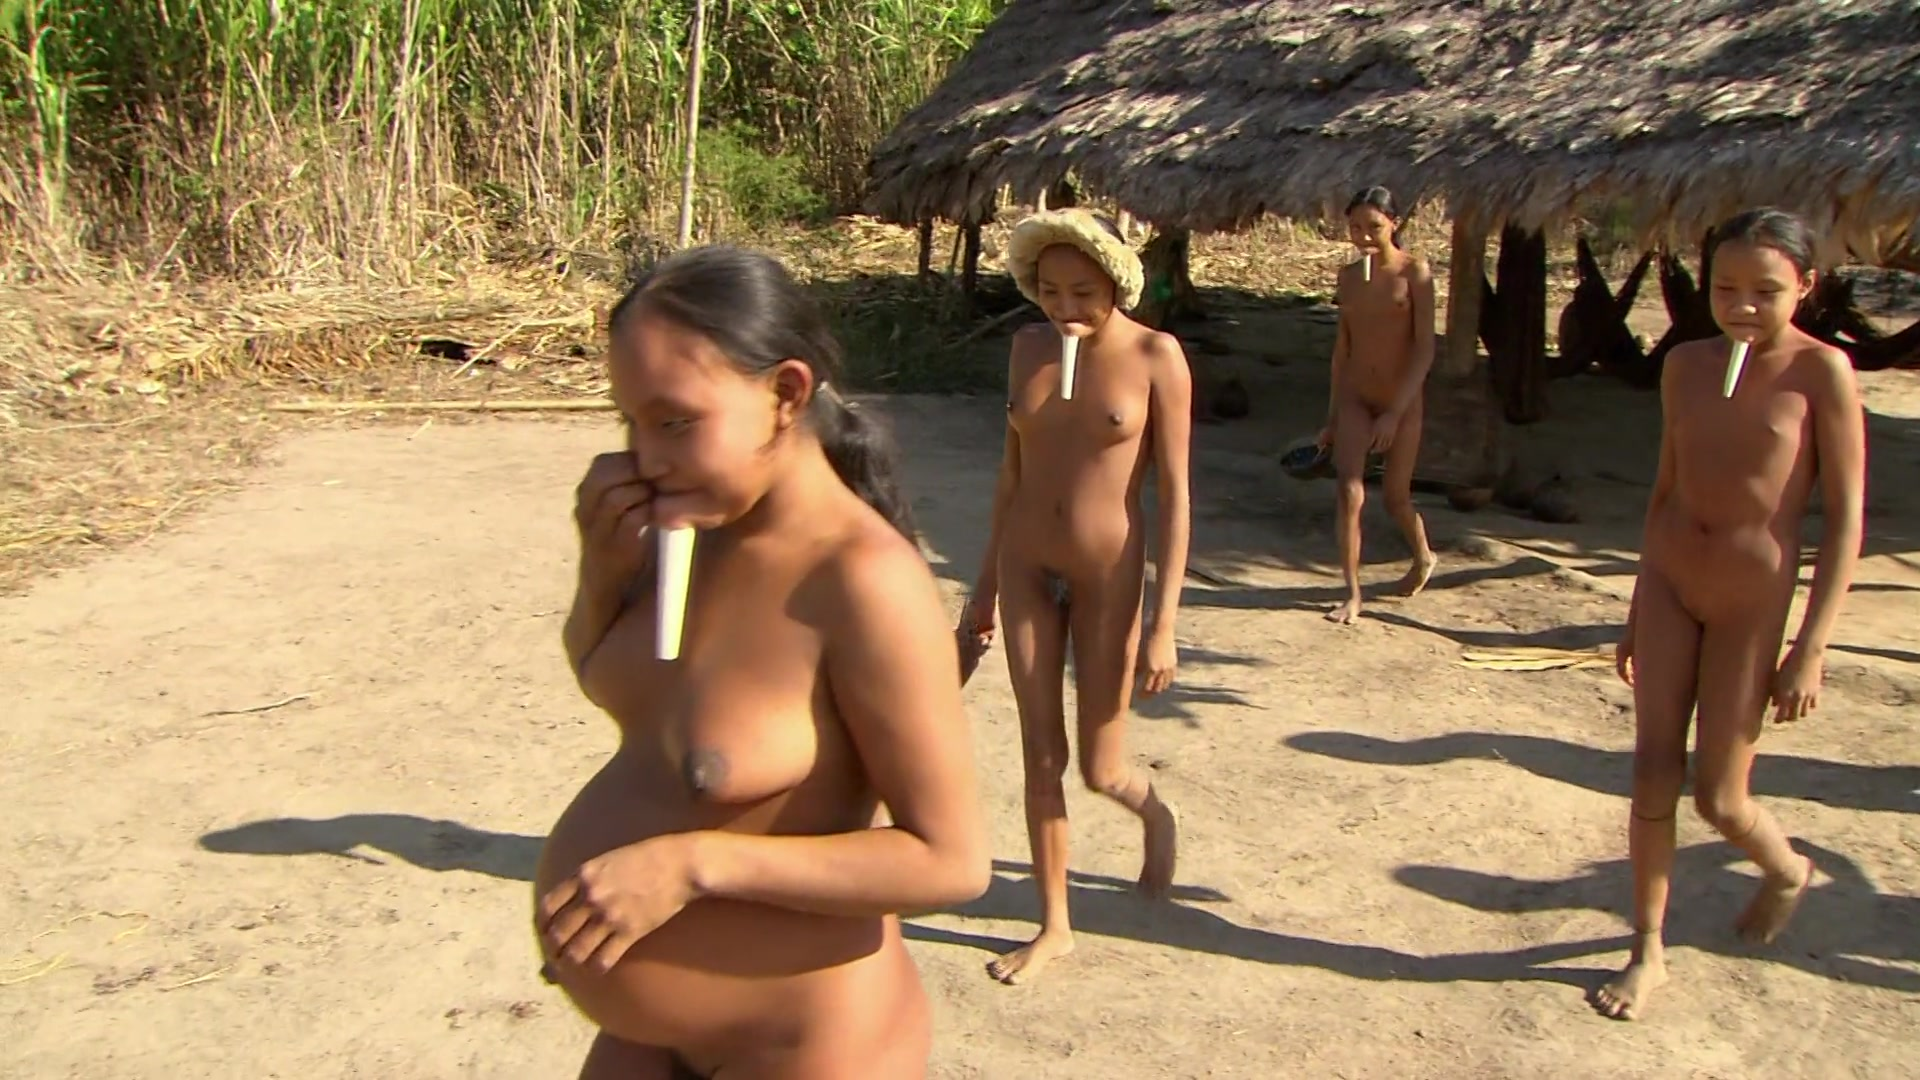 Nude girls in amazonia exploited videos